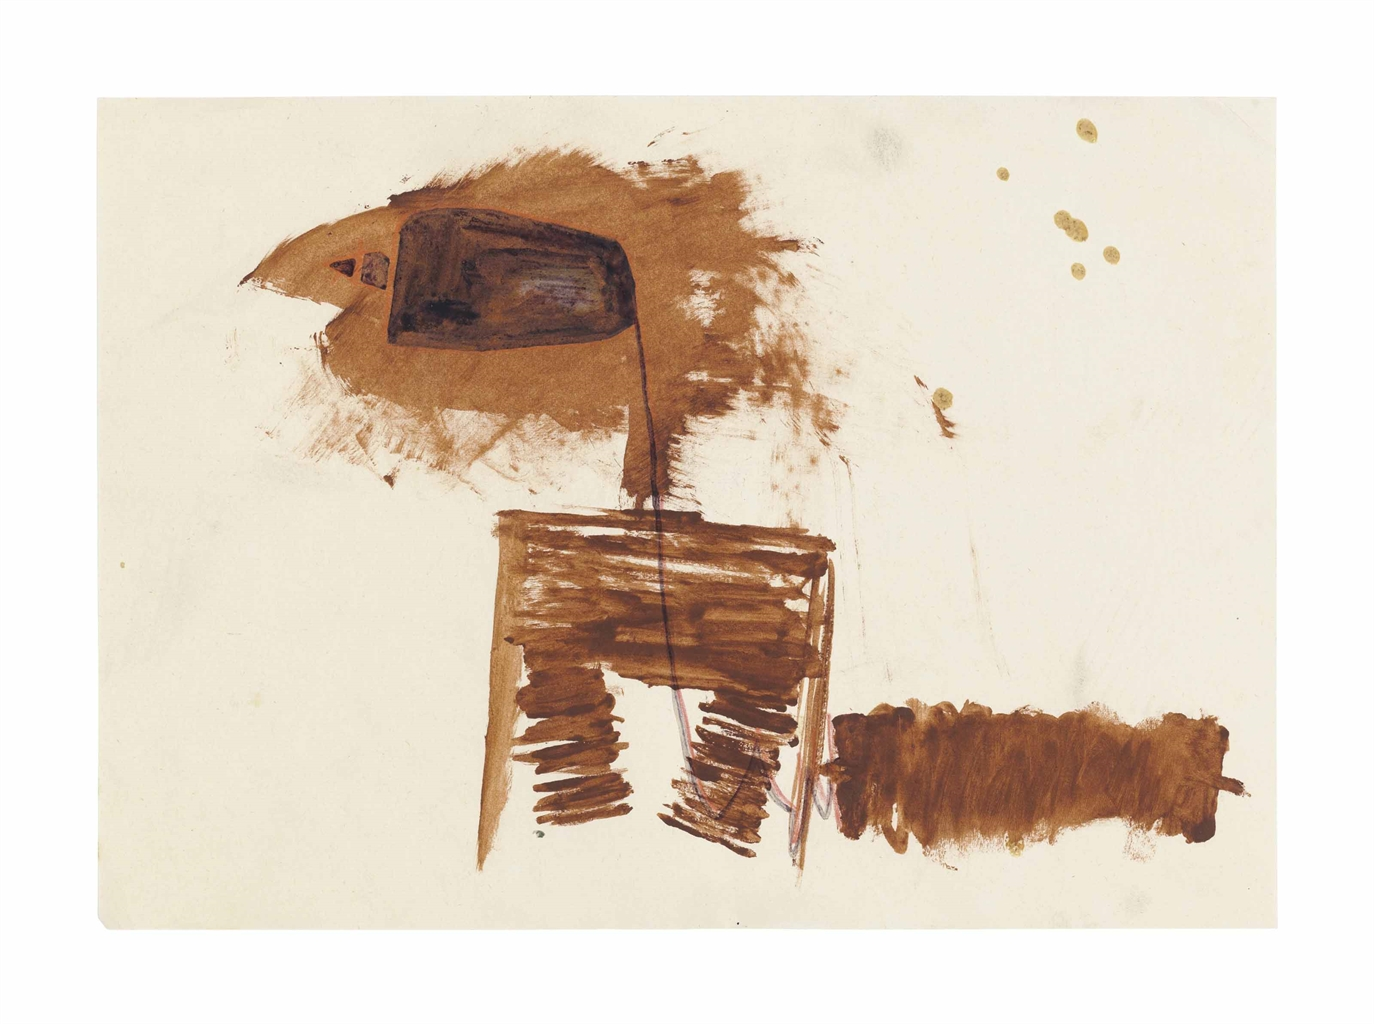 Joseph Beuys-Pol (Pole)-1962